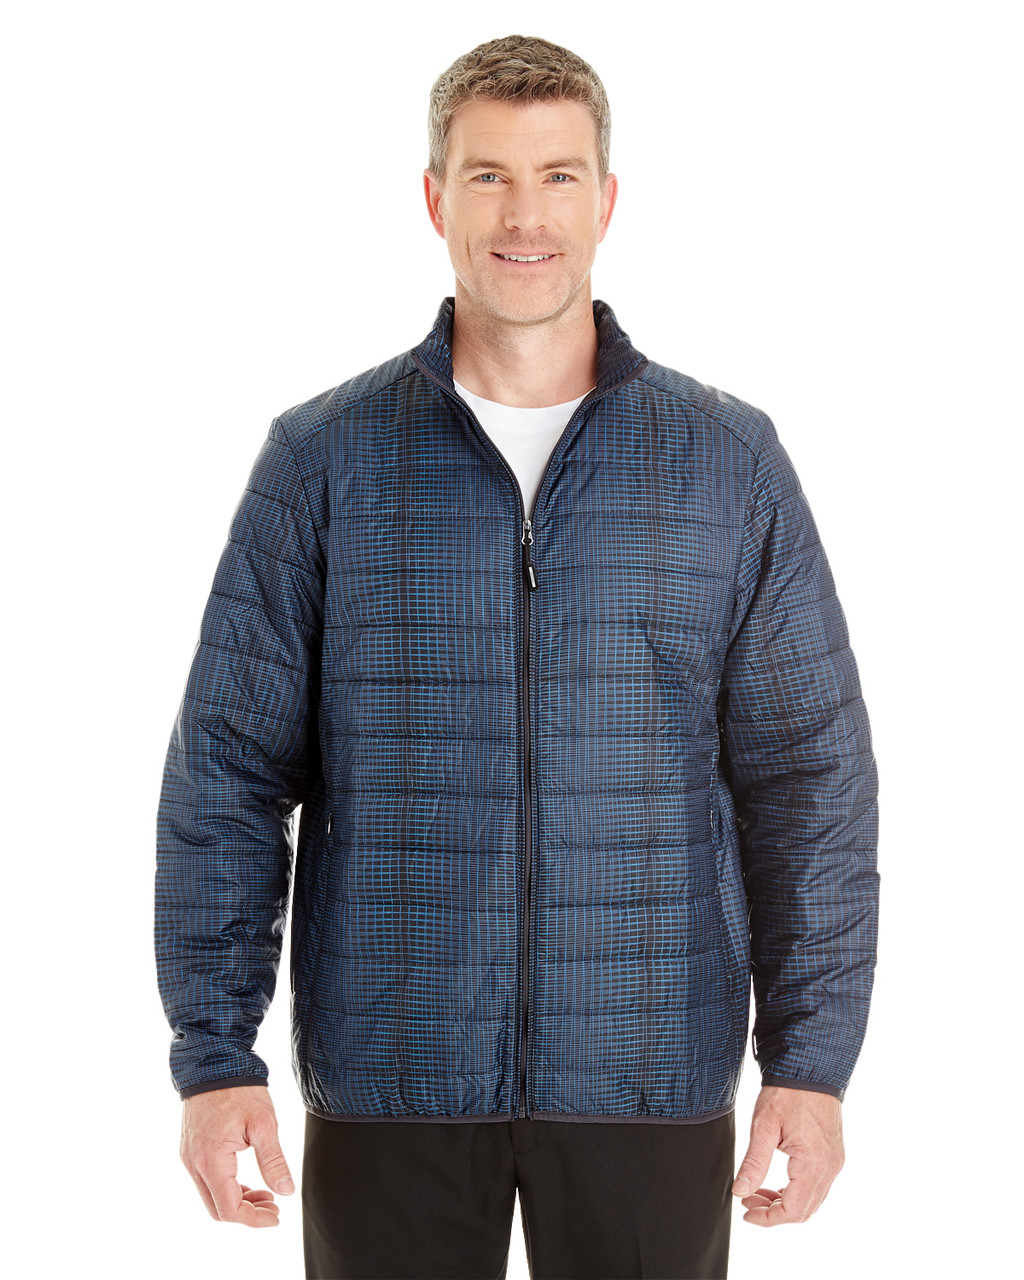 Plaid - FRONT - NE701 Ash City - North End Men's Portal Interactive Printed Packable Puffer Jacket | Blankclothing.ca